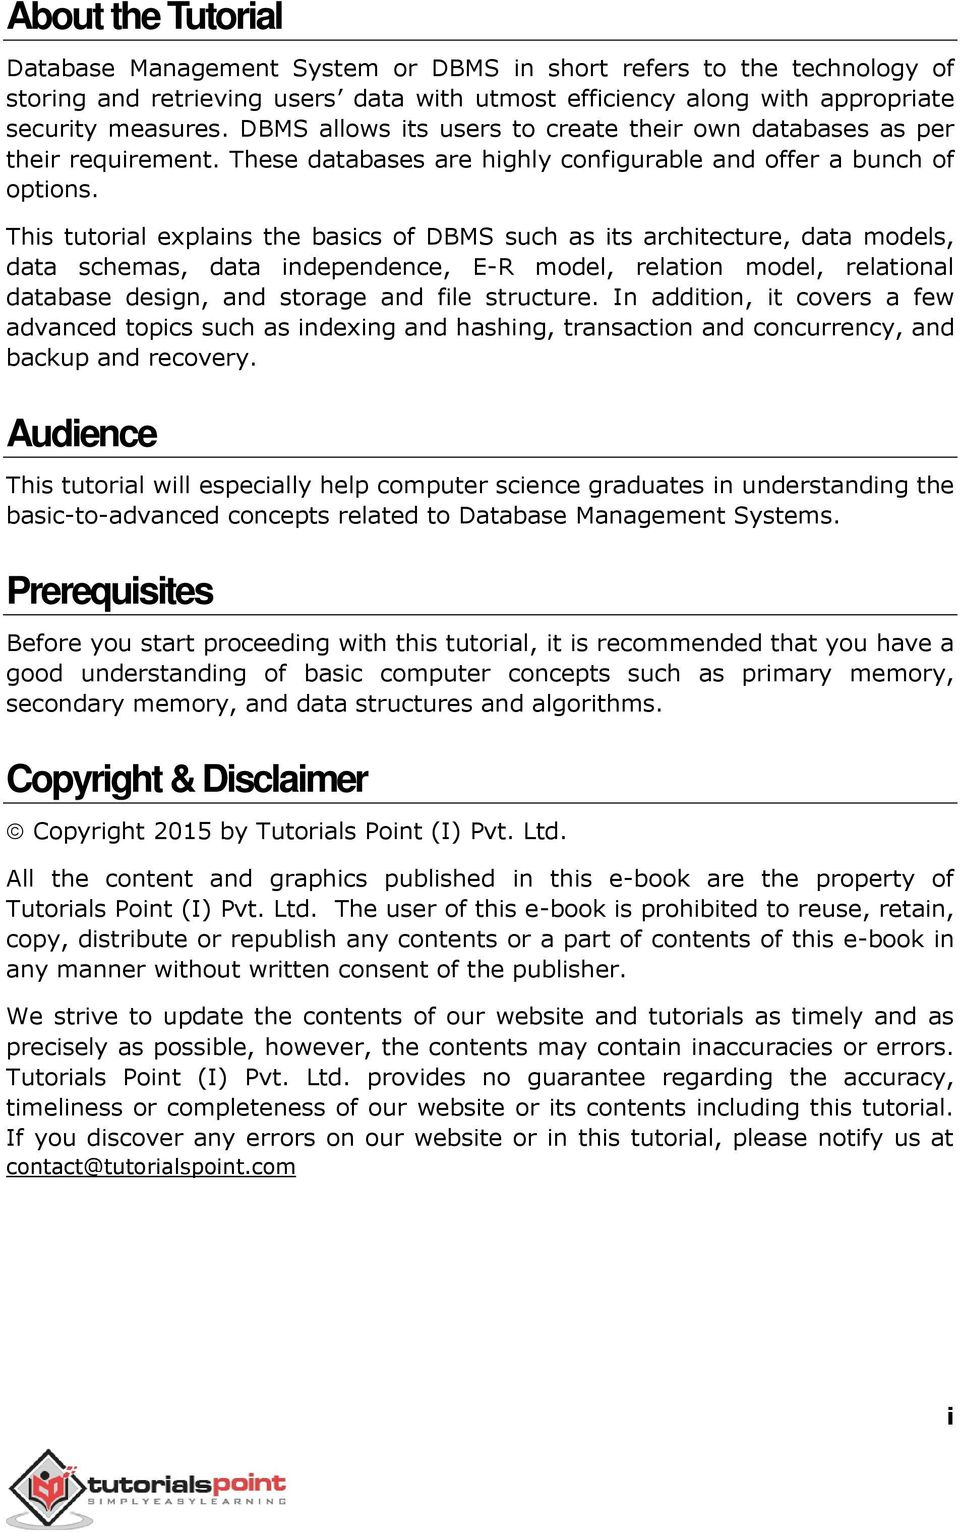 About The Tutorial Audience Prerequisites Copyright Disclaimer Pdf Free Download